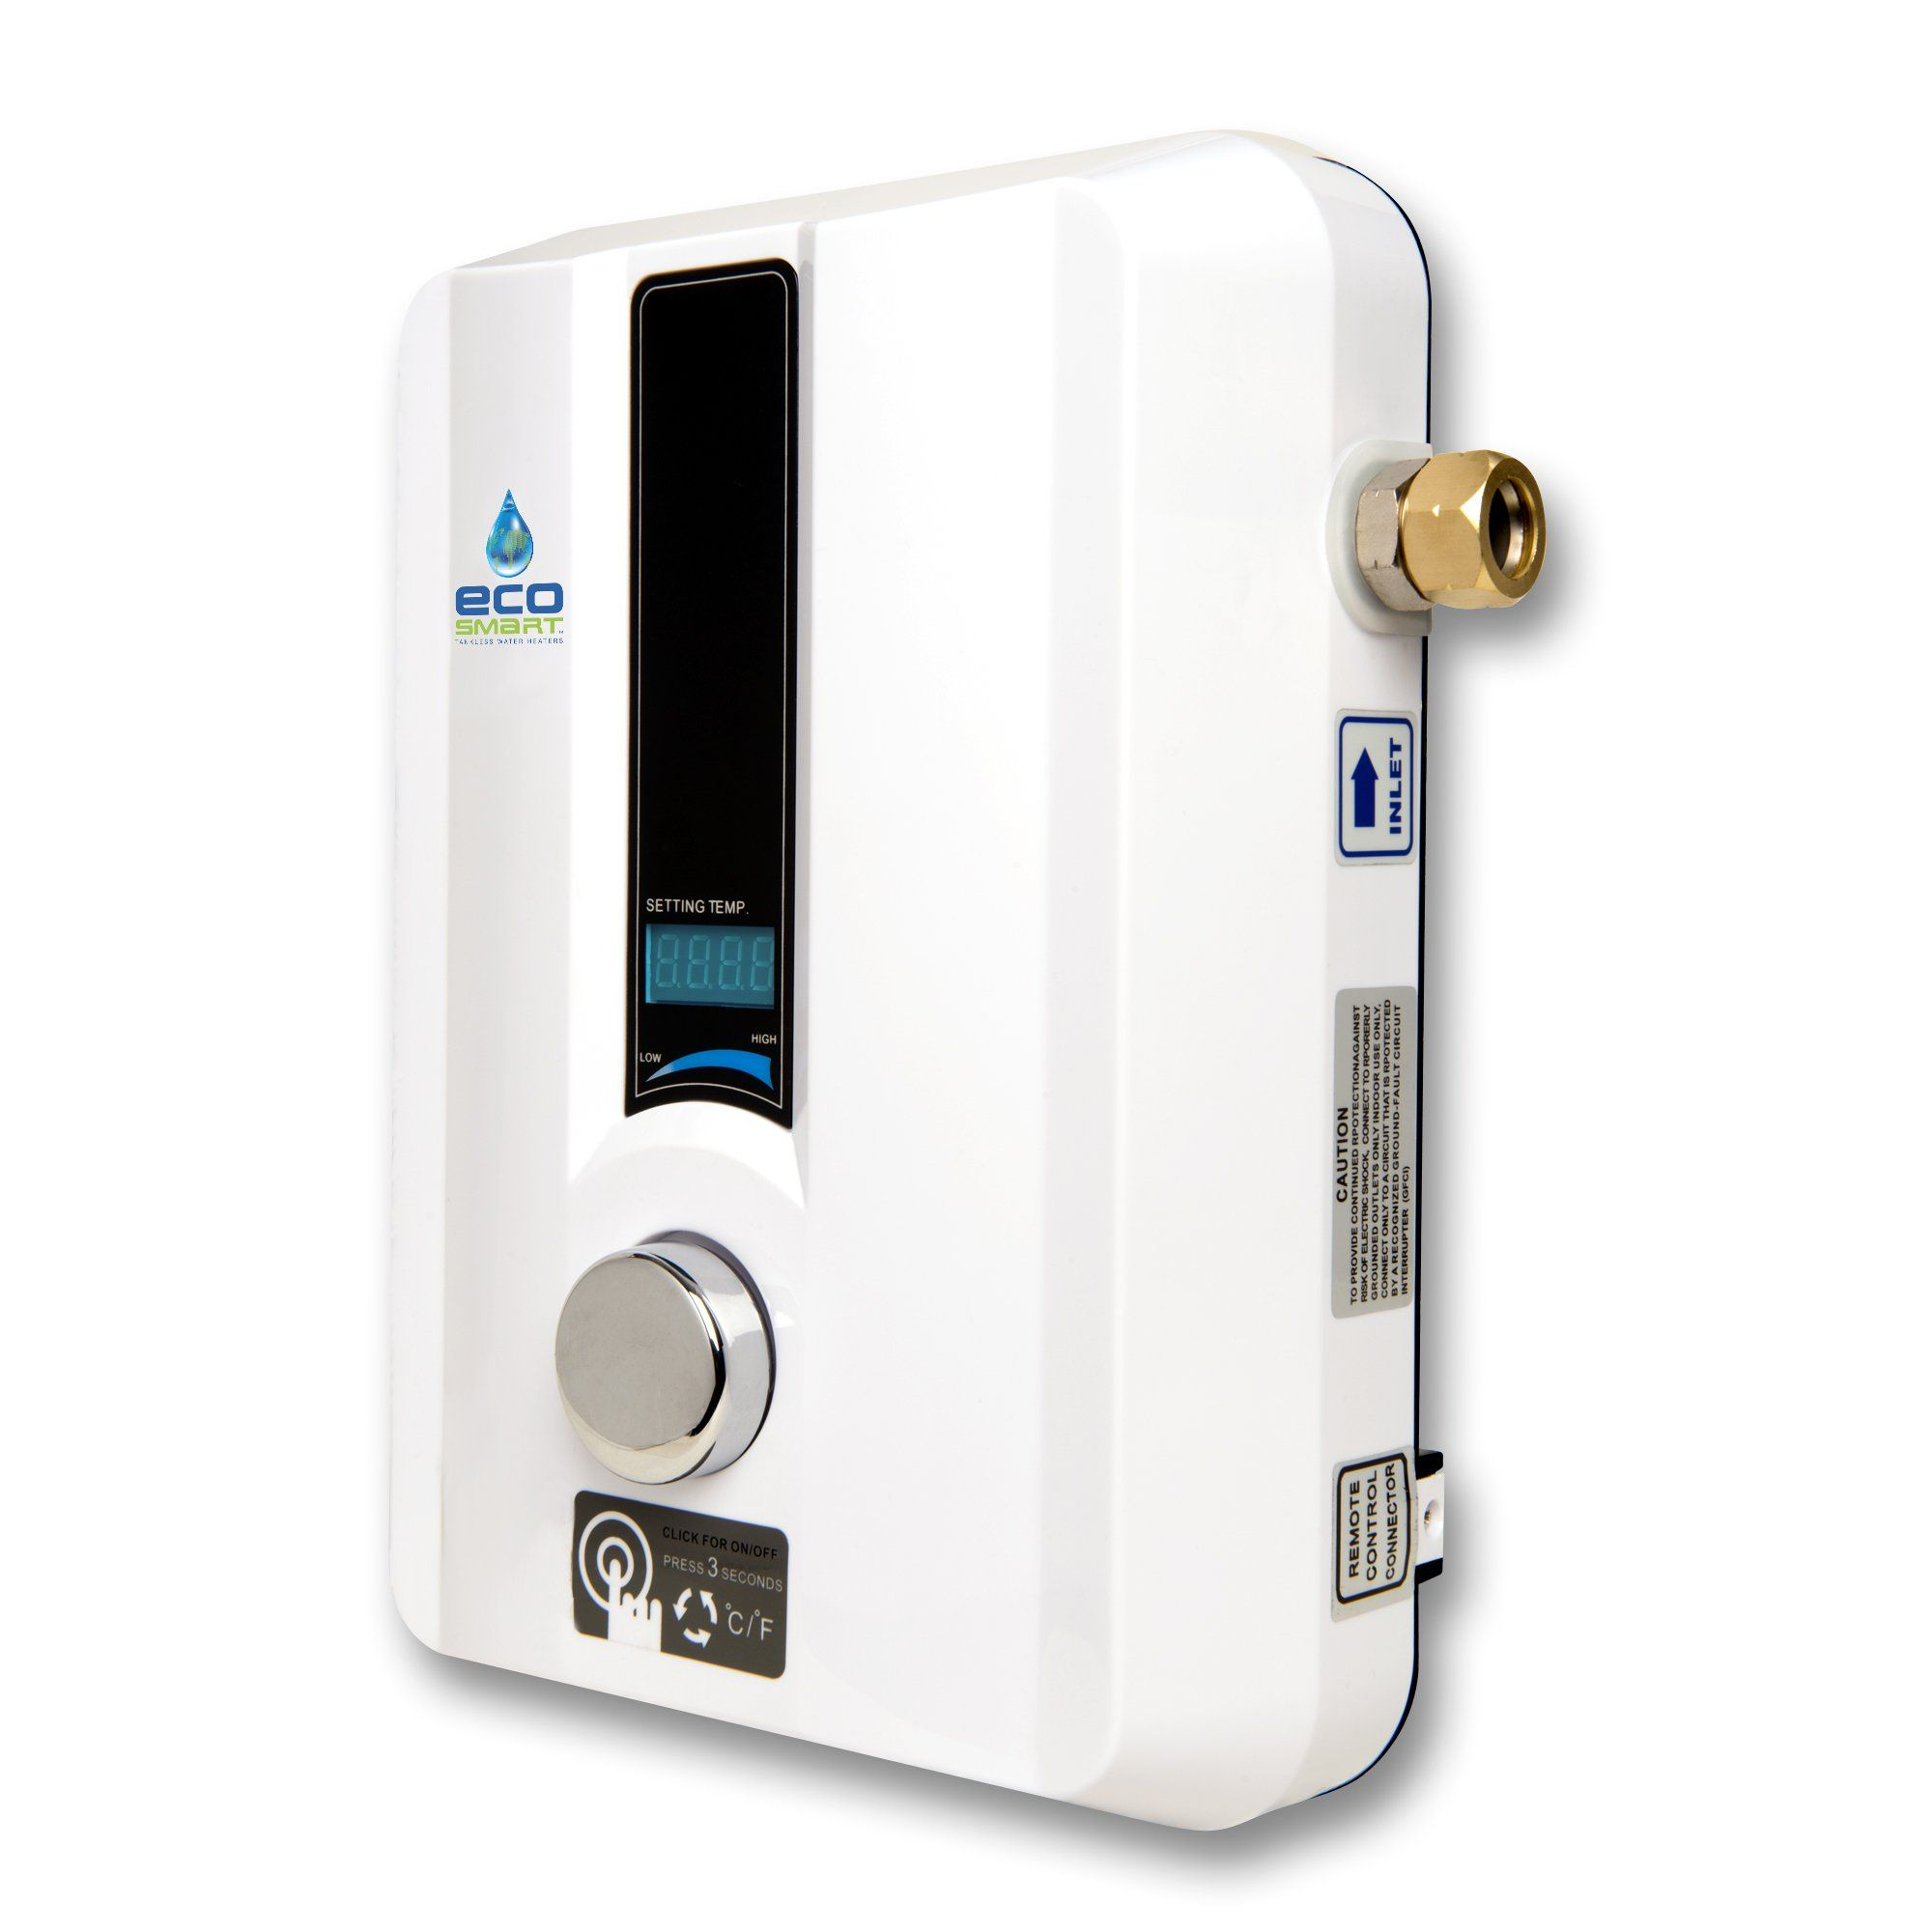 Ecosmart eco 11 electric tankless water heater 13kw at